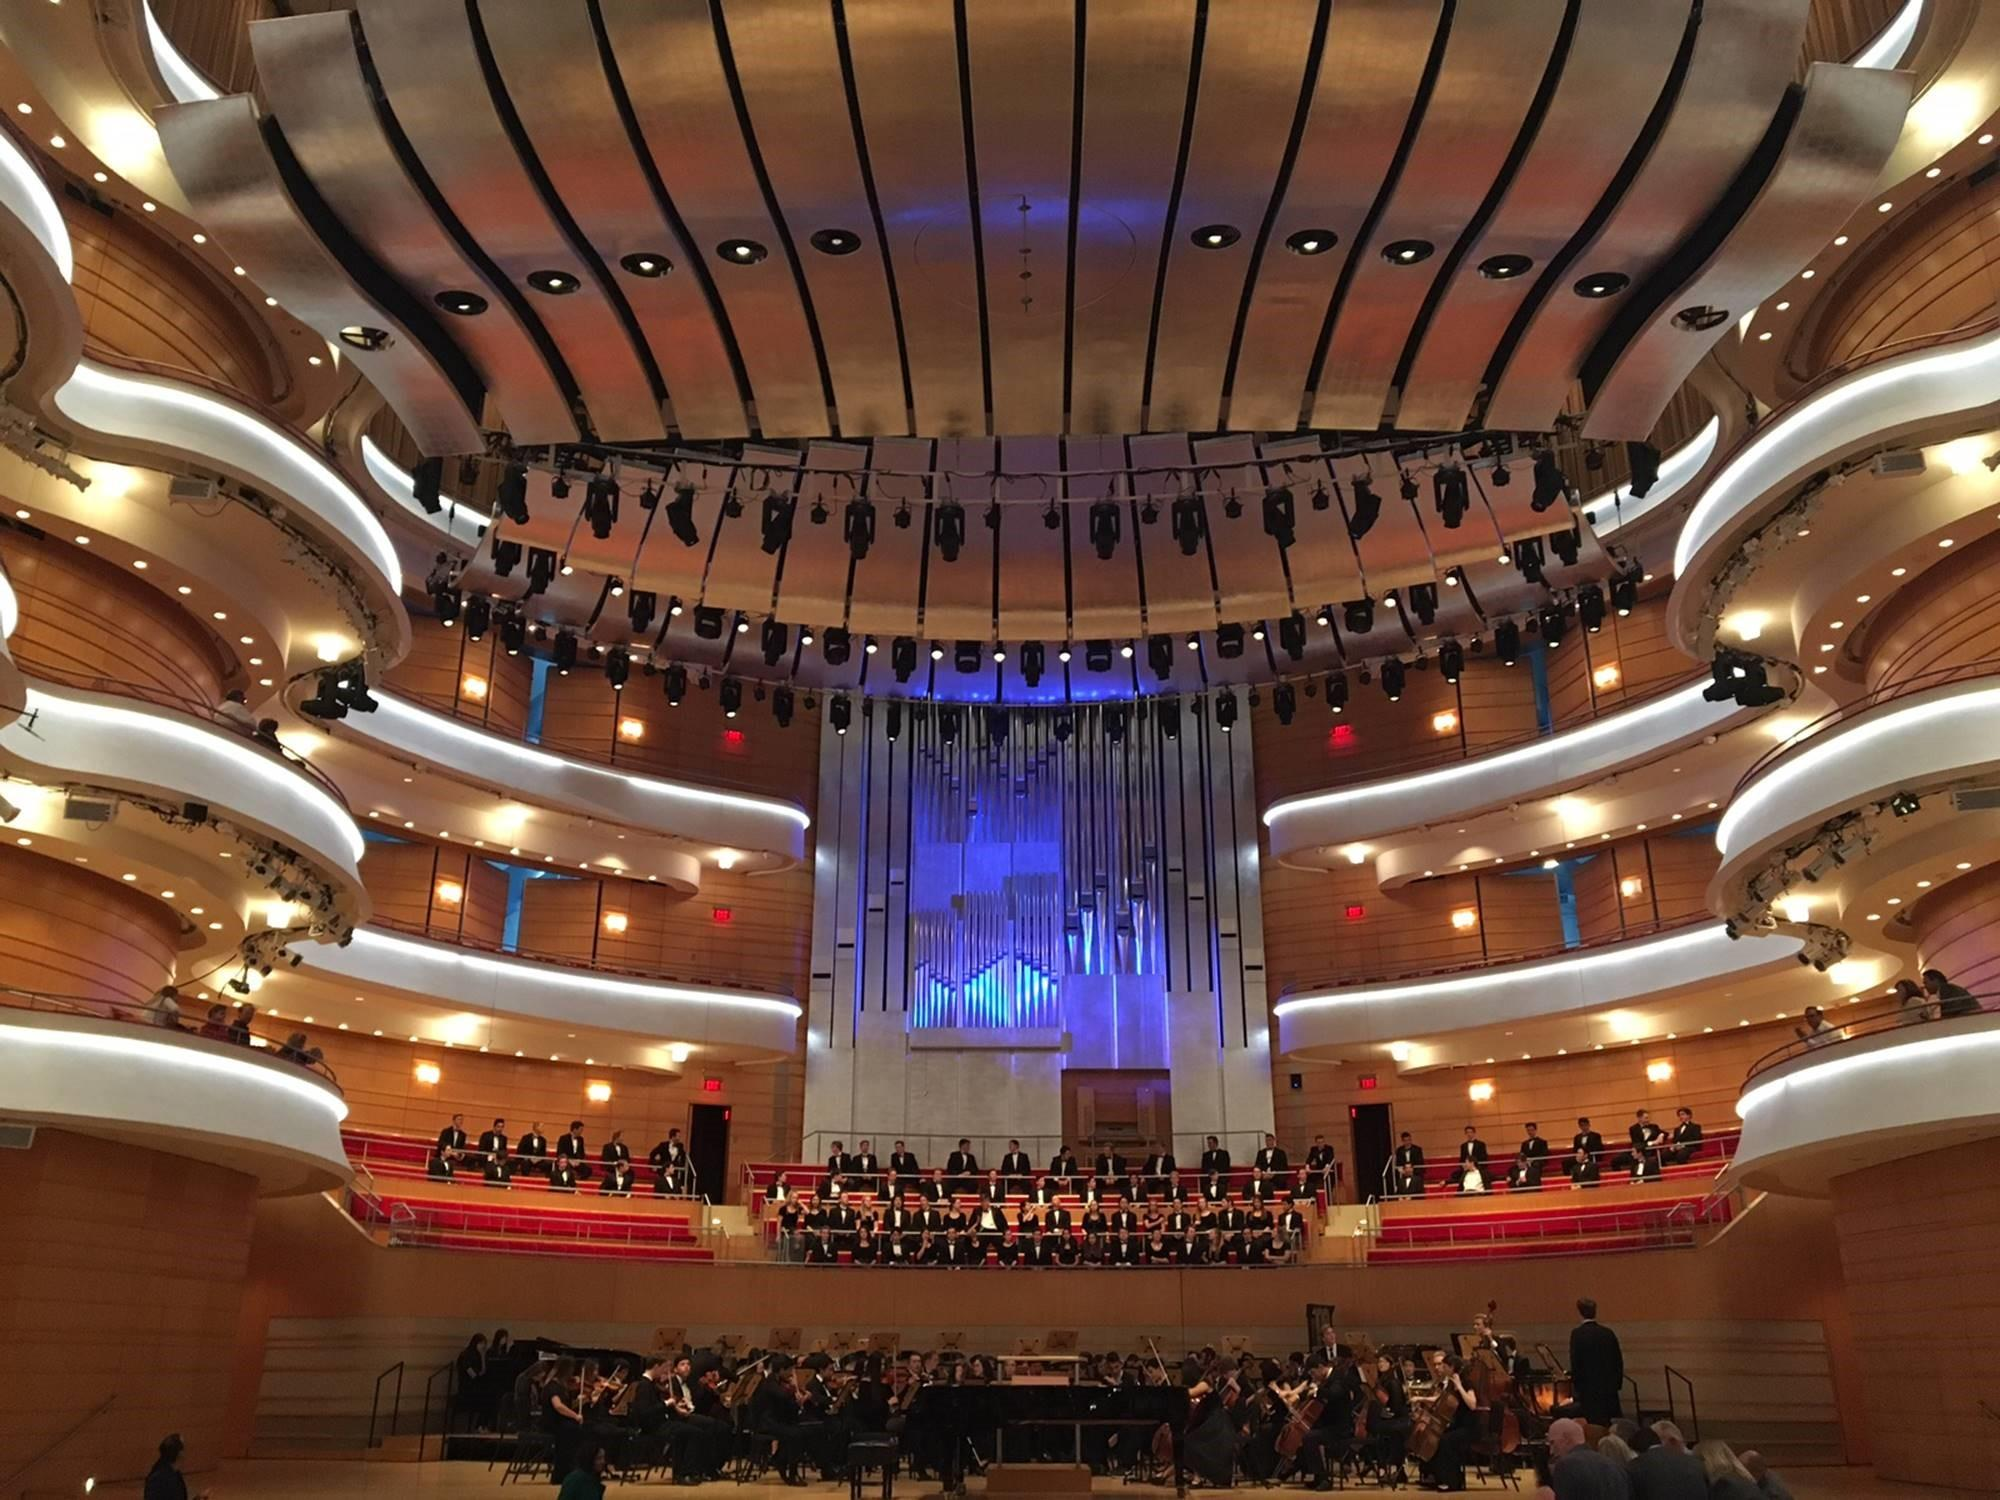 The Renée and Henry Segerstrom Concert Hall dazzled in memory of a beloved teacher.